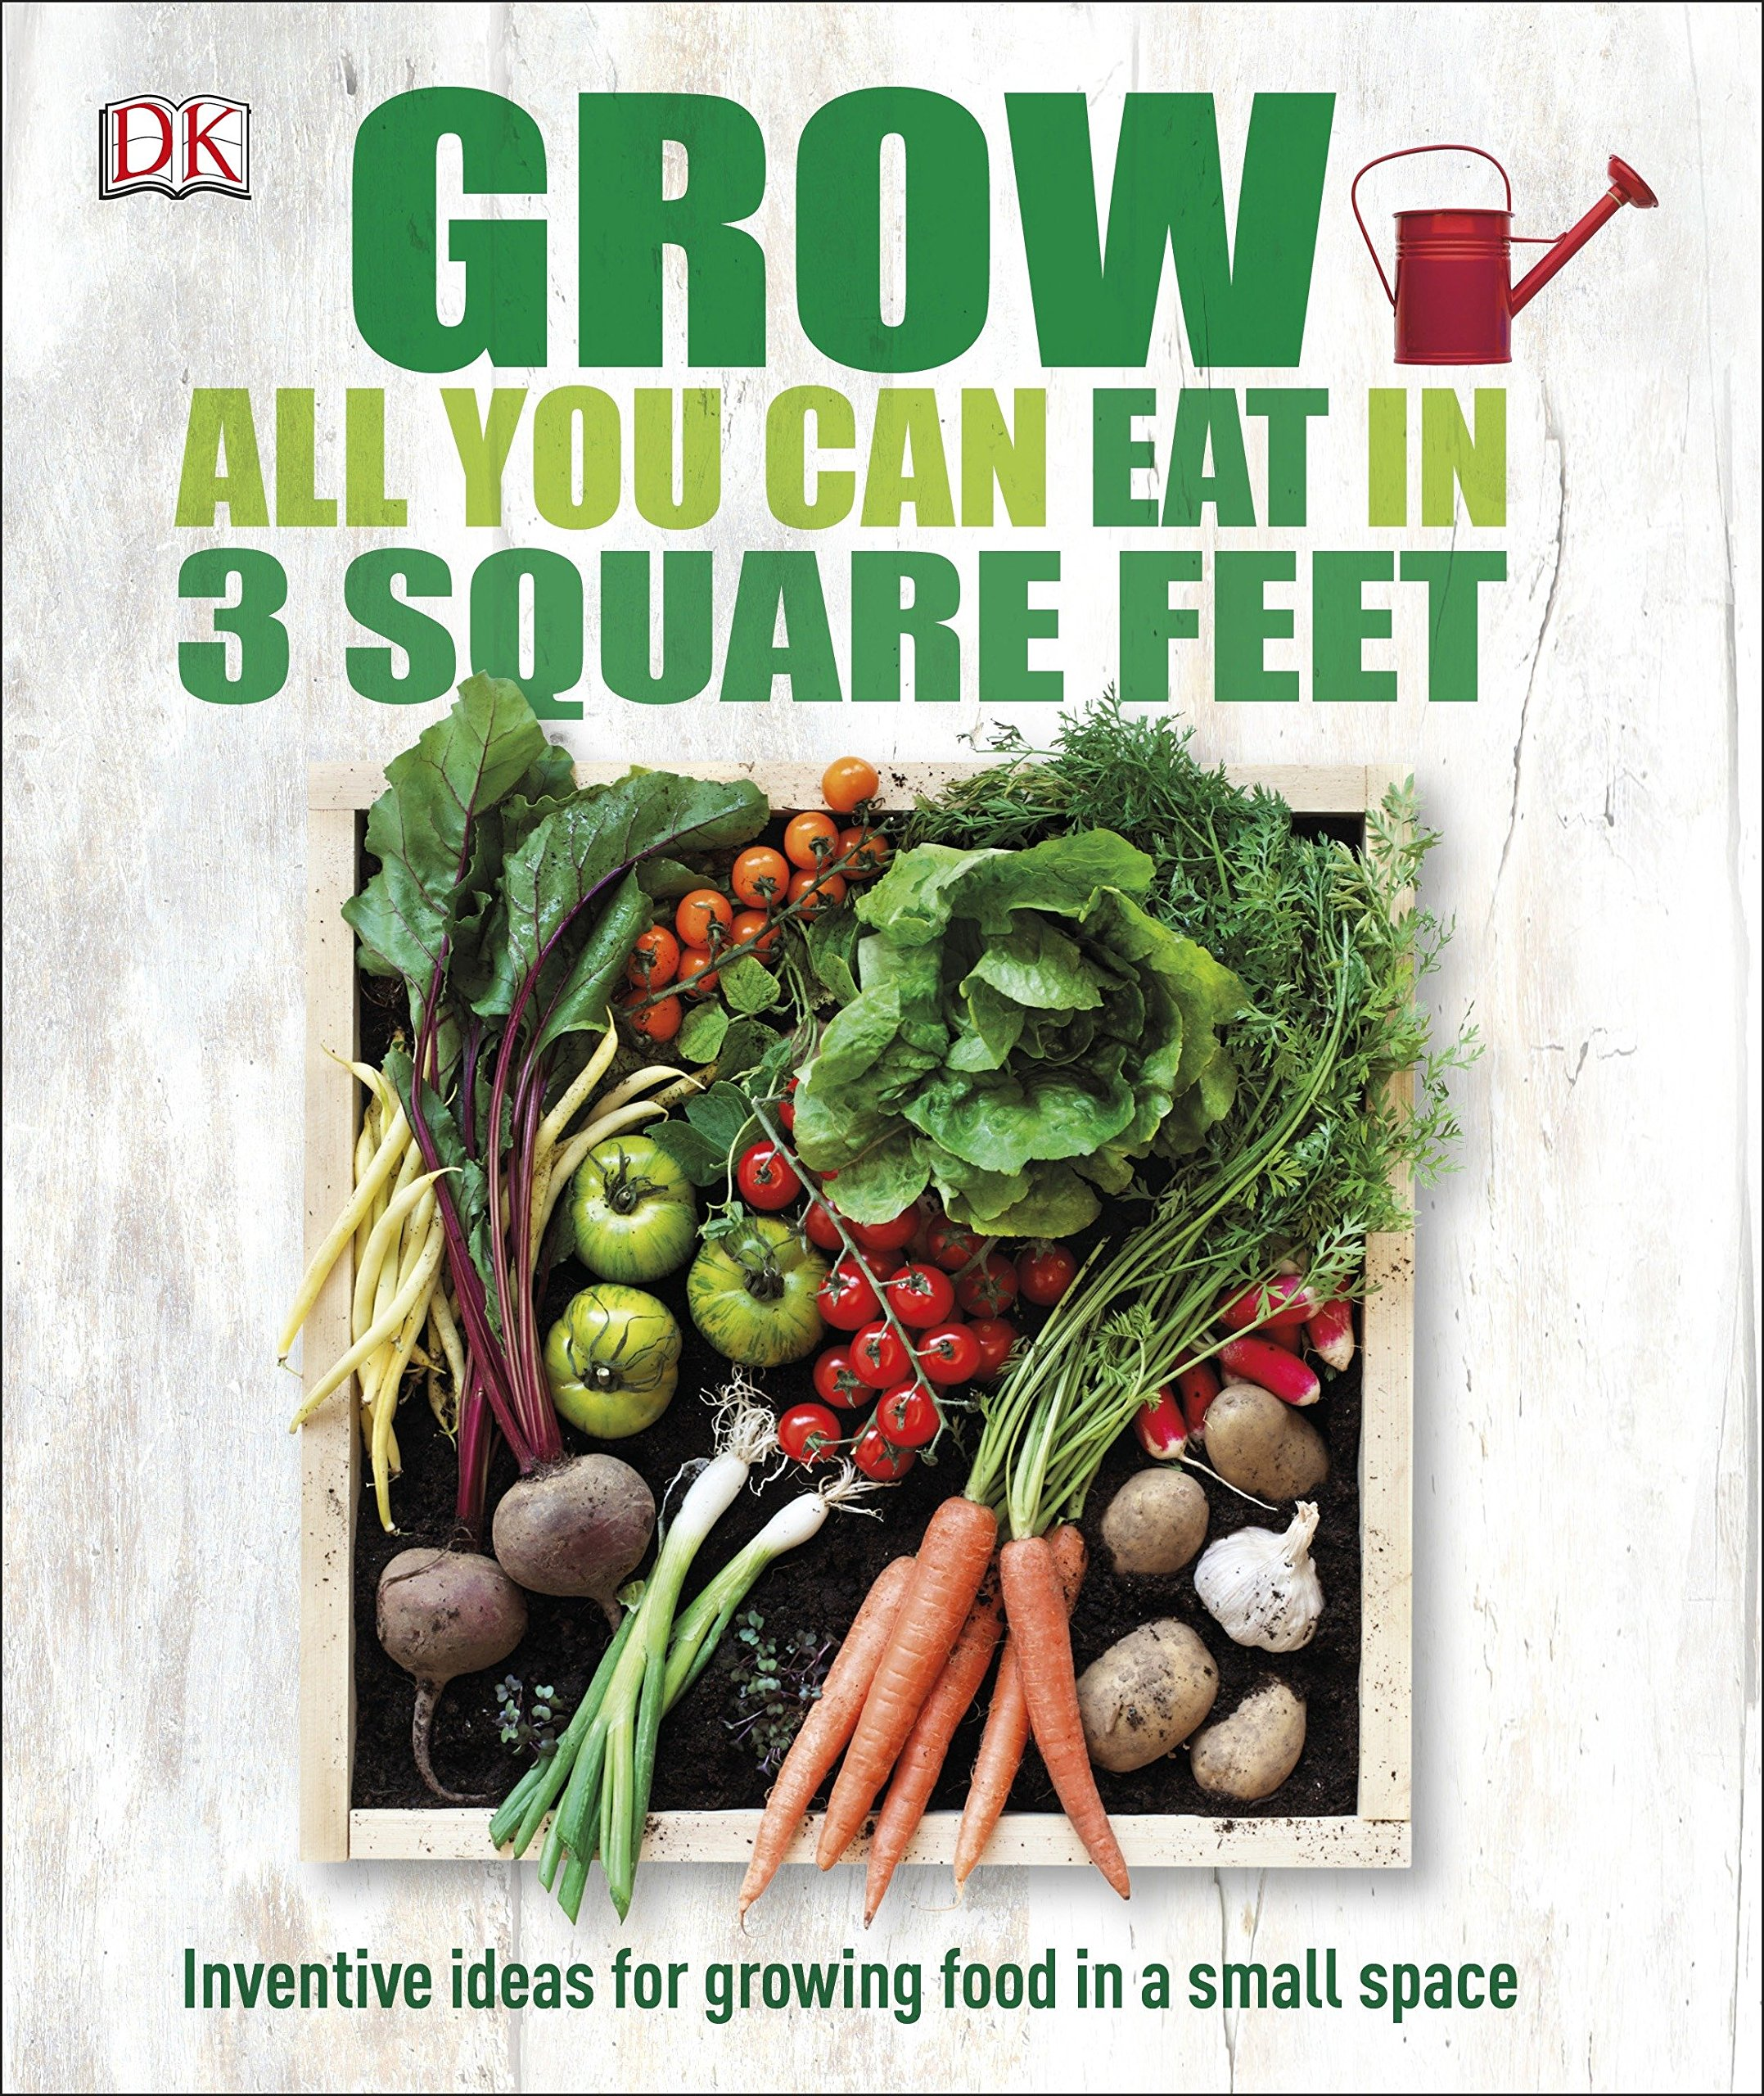 Read more about the article Grow All You Can Eat in 3 Square Feet: Inventive Ideas for Growing Food in a Small Space